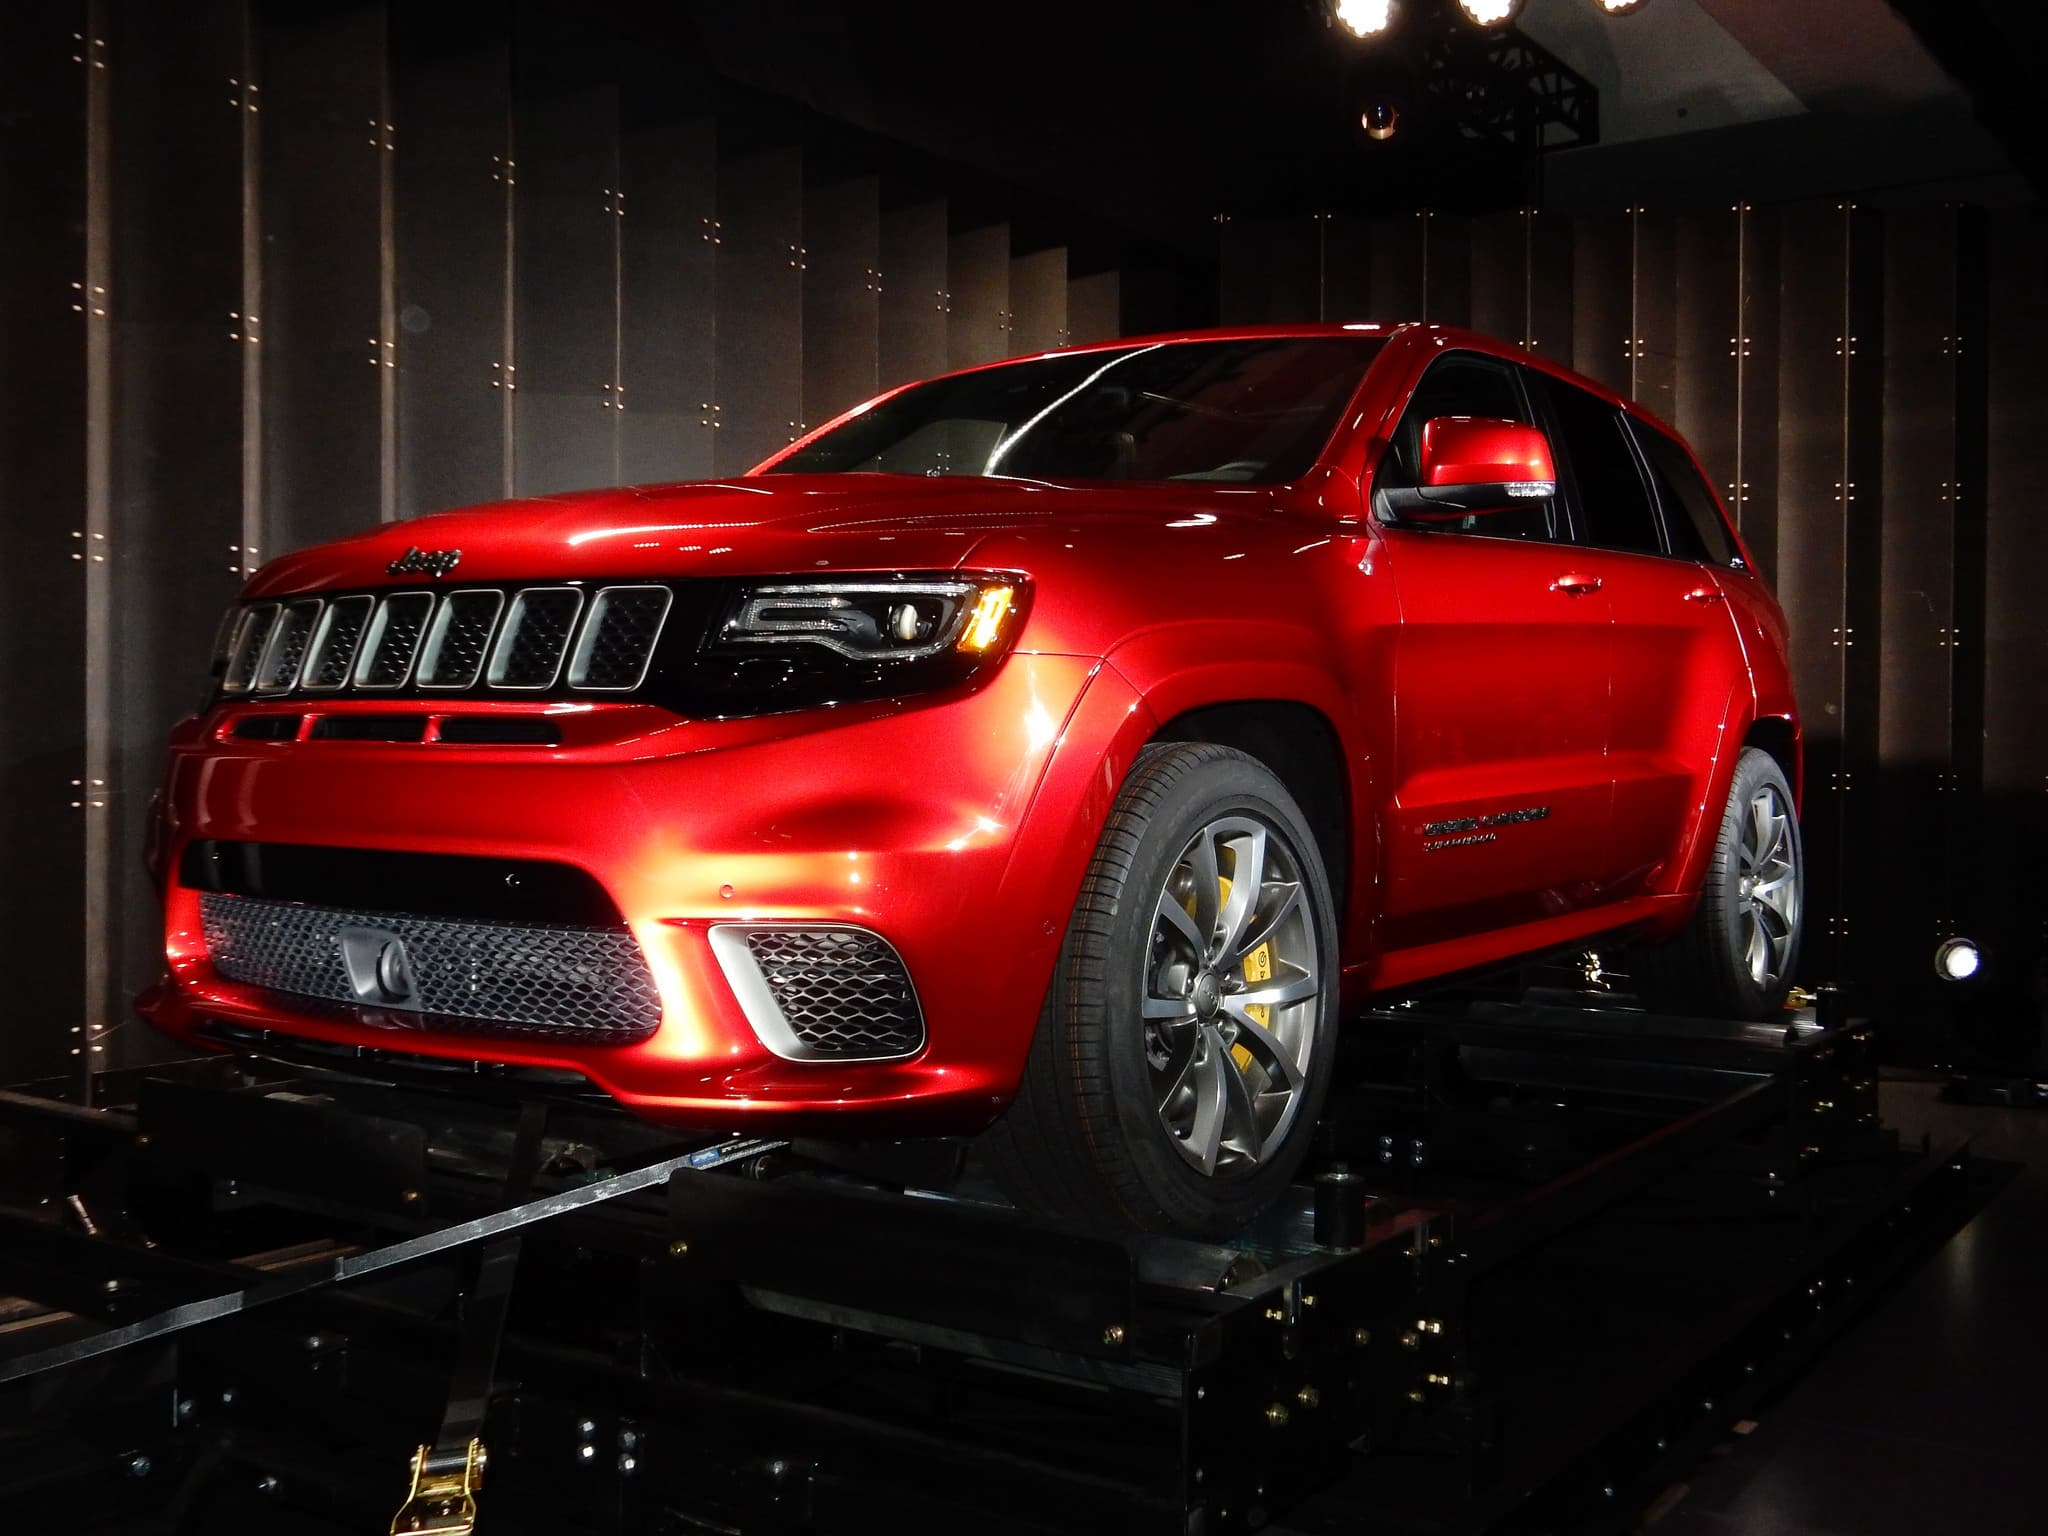 2018 Jeep Grand Cherokee Trackhawk headlights